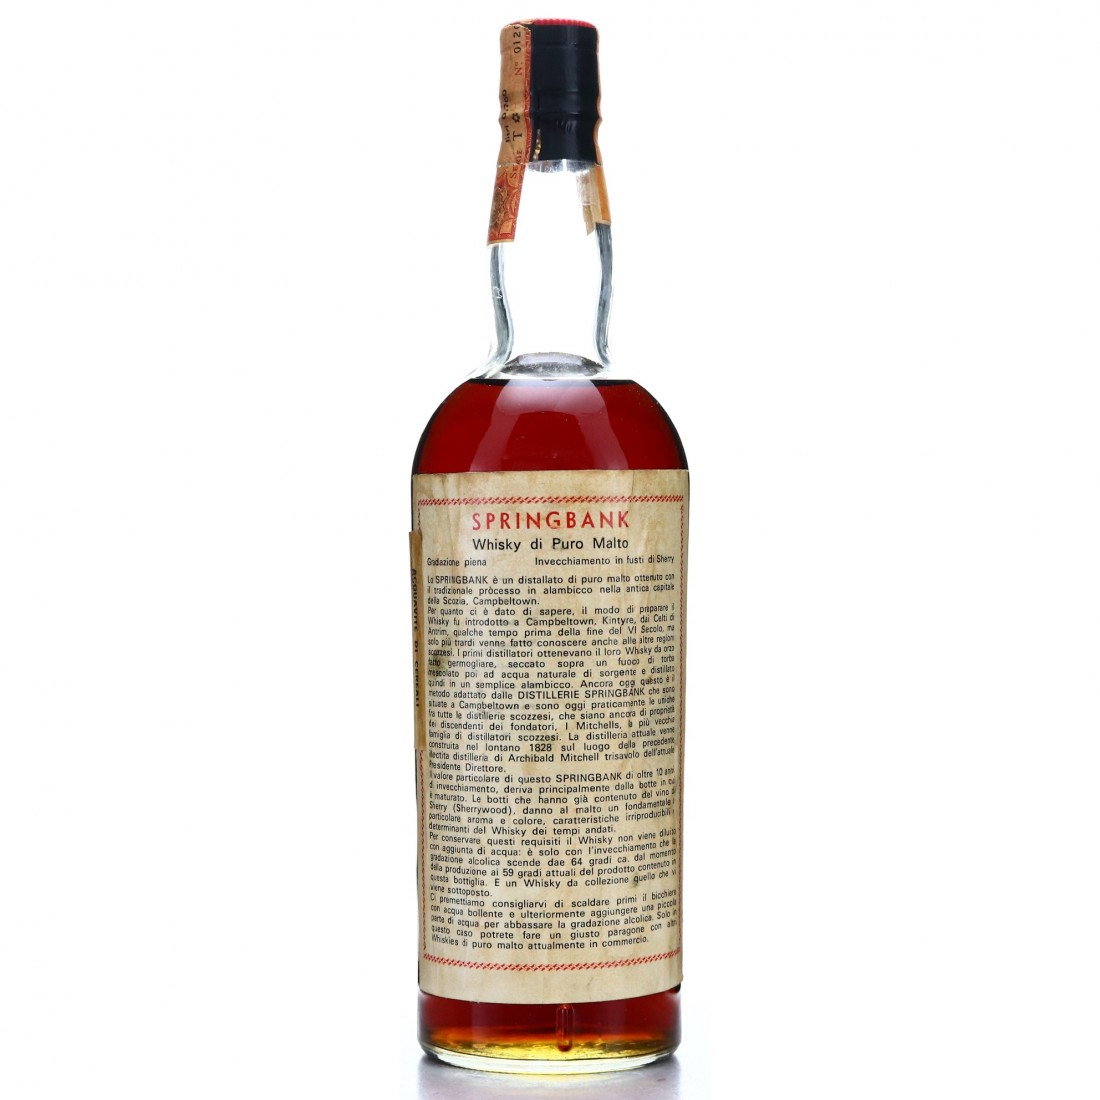 Springbank 1967 Single Cask 10 Year Old #3129 / A. Sutti Import